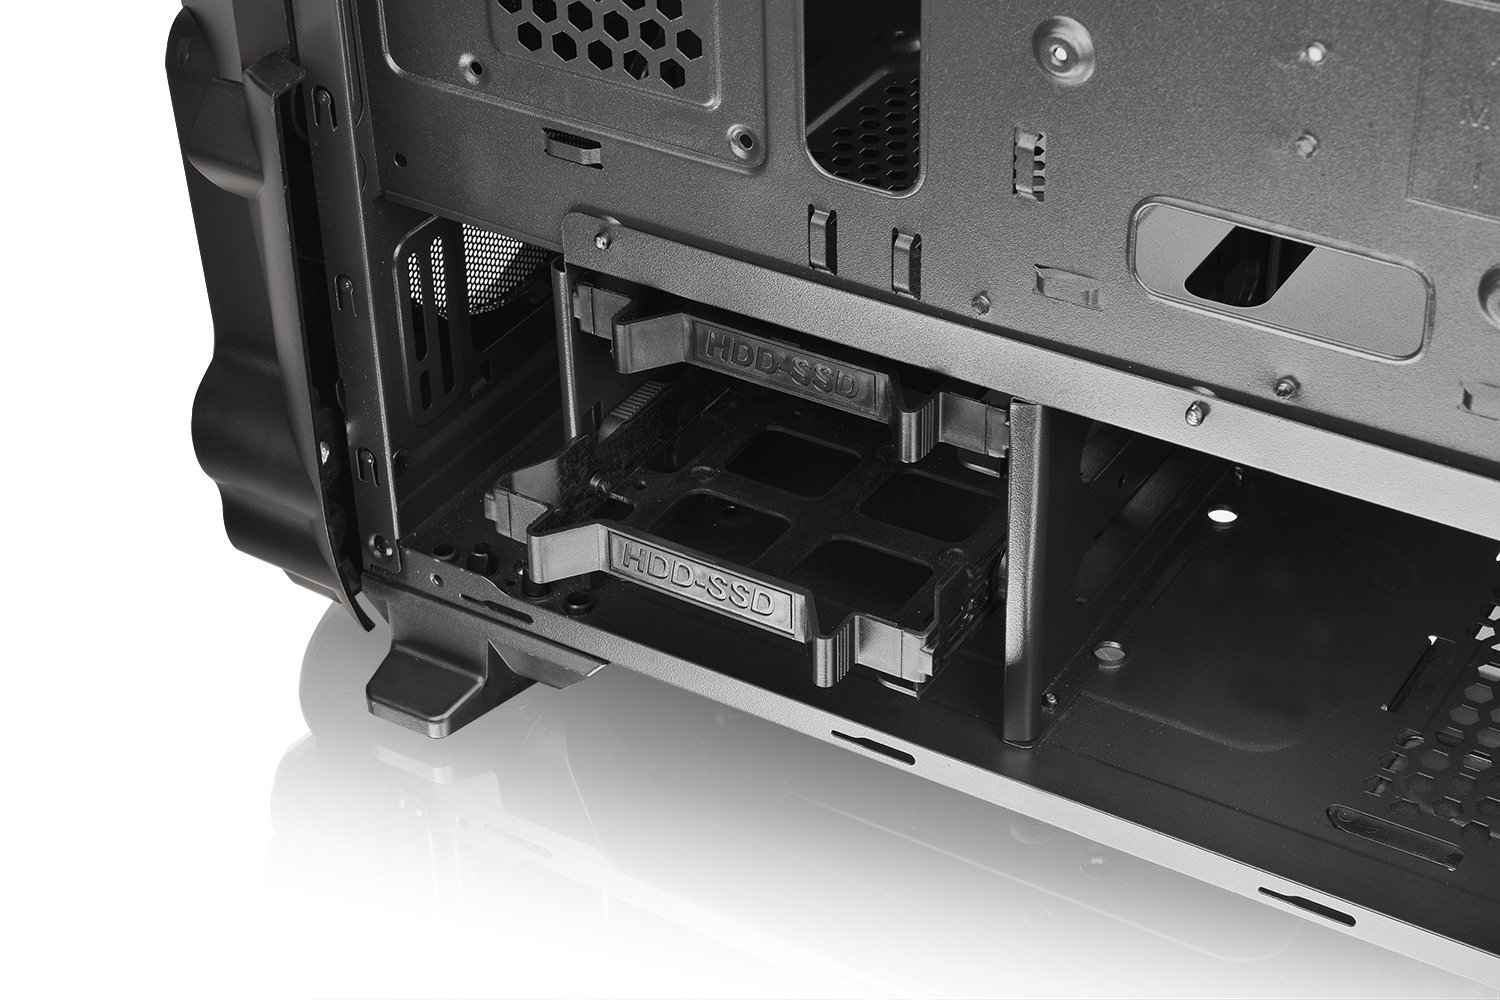 Thermaltake Versa N24 Black ATX Mid Tower Gaming Computer Case Chassis with Power Supply Cover, 120mm Rear Fan preinstalled. CA-1G1-00M1WN-00 by Thermaltake (Image #17)